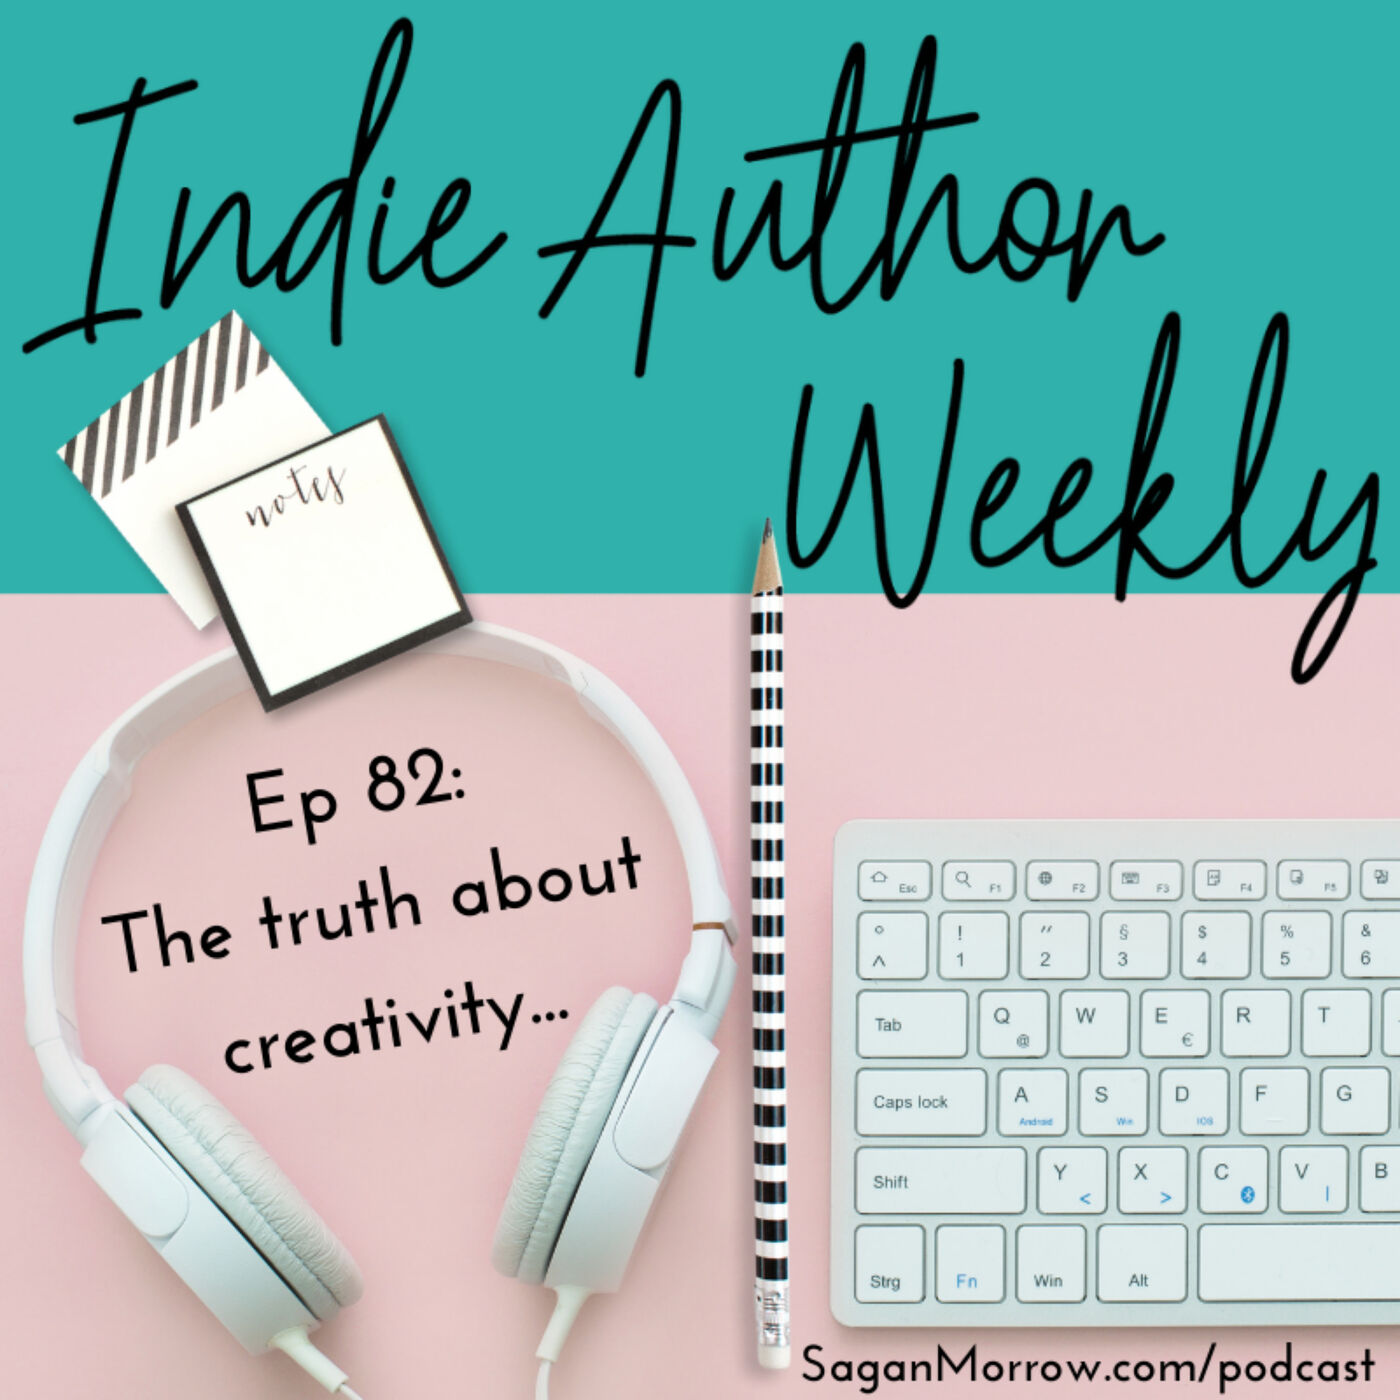 082: The truth about creativity that every writer needs to hear